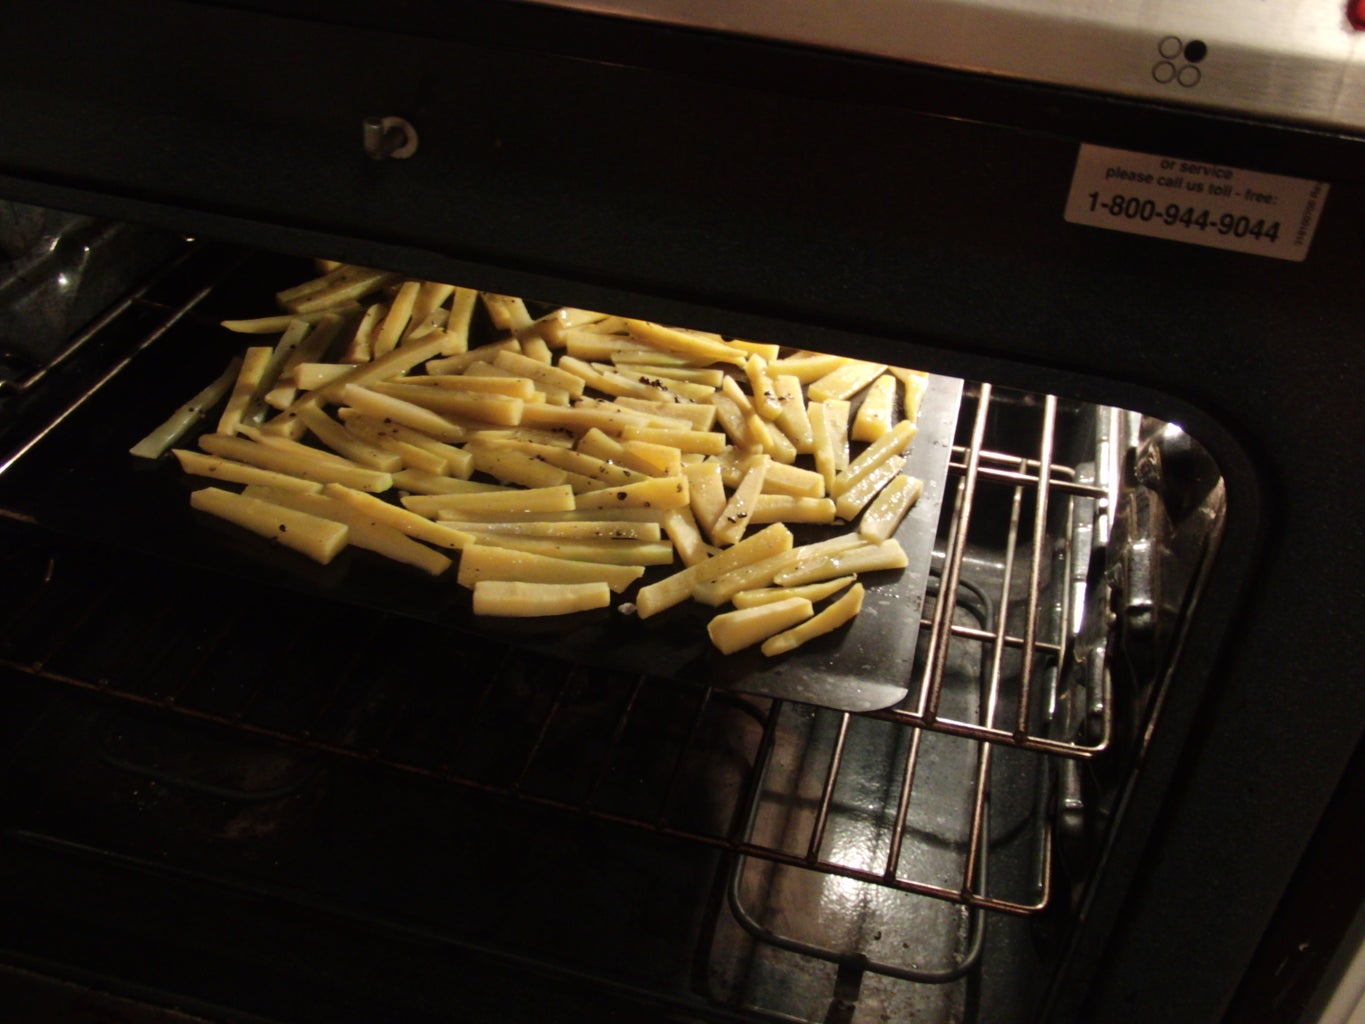 Baking the Fries